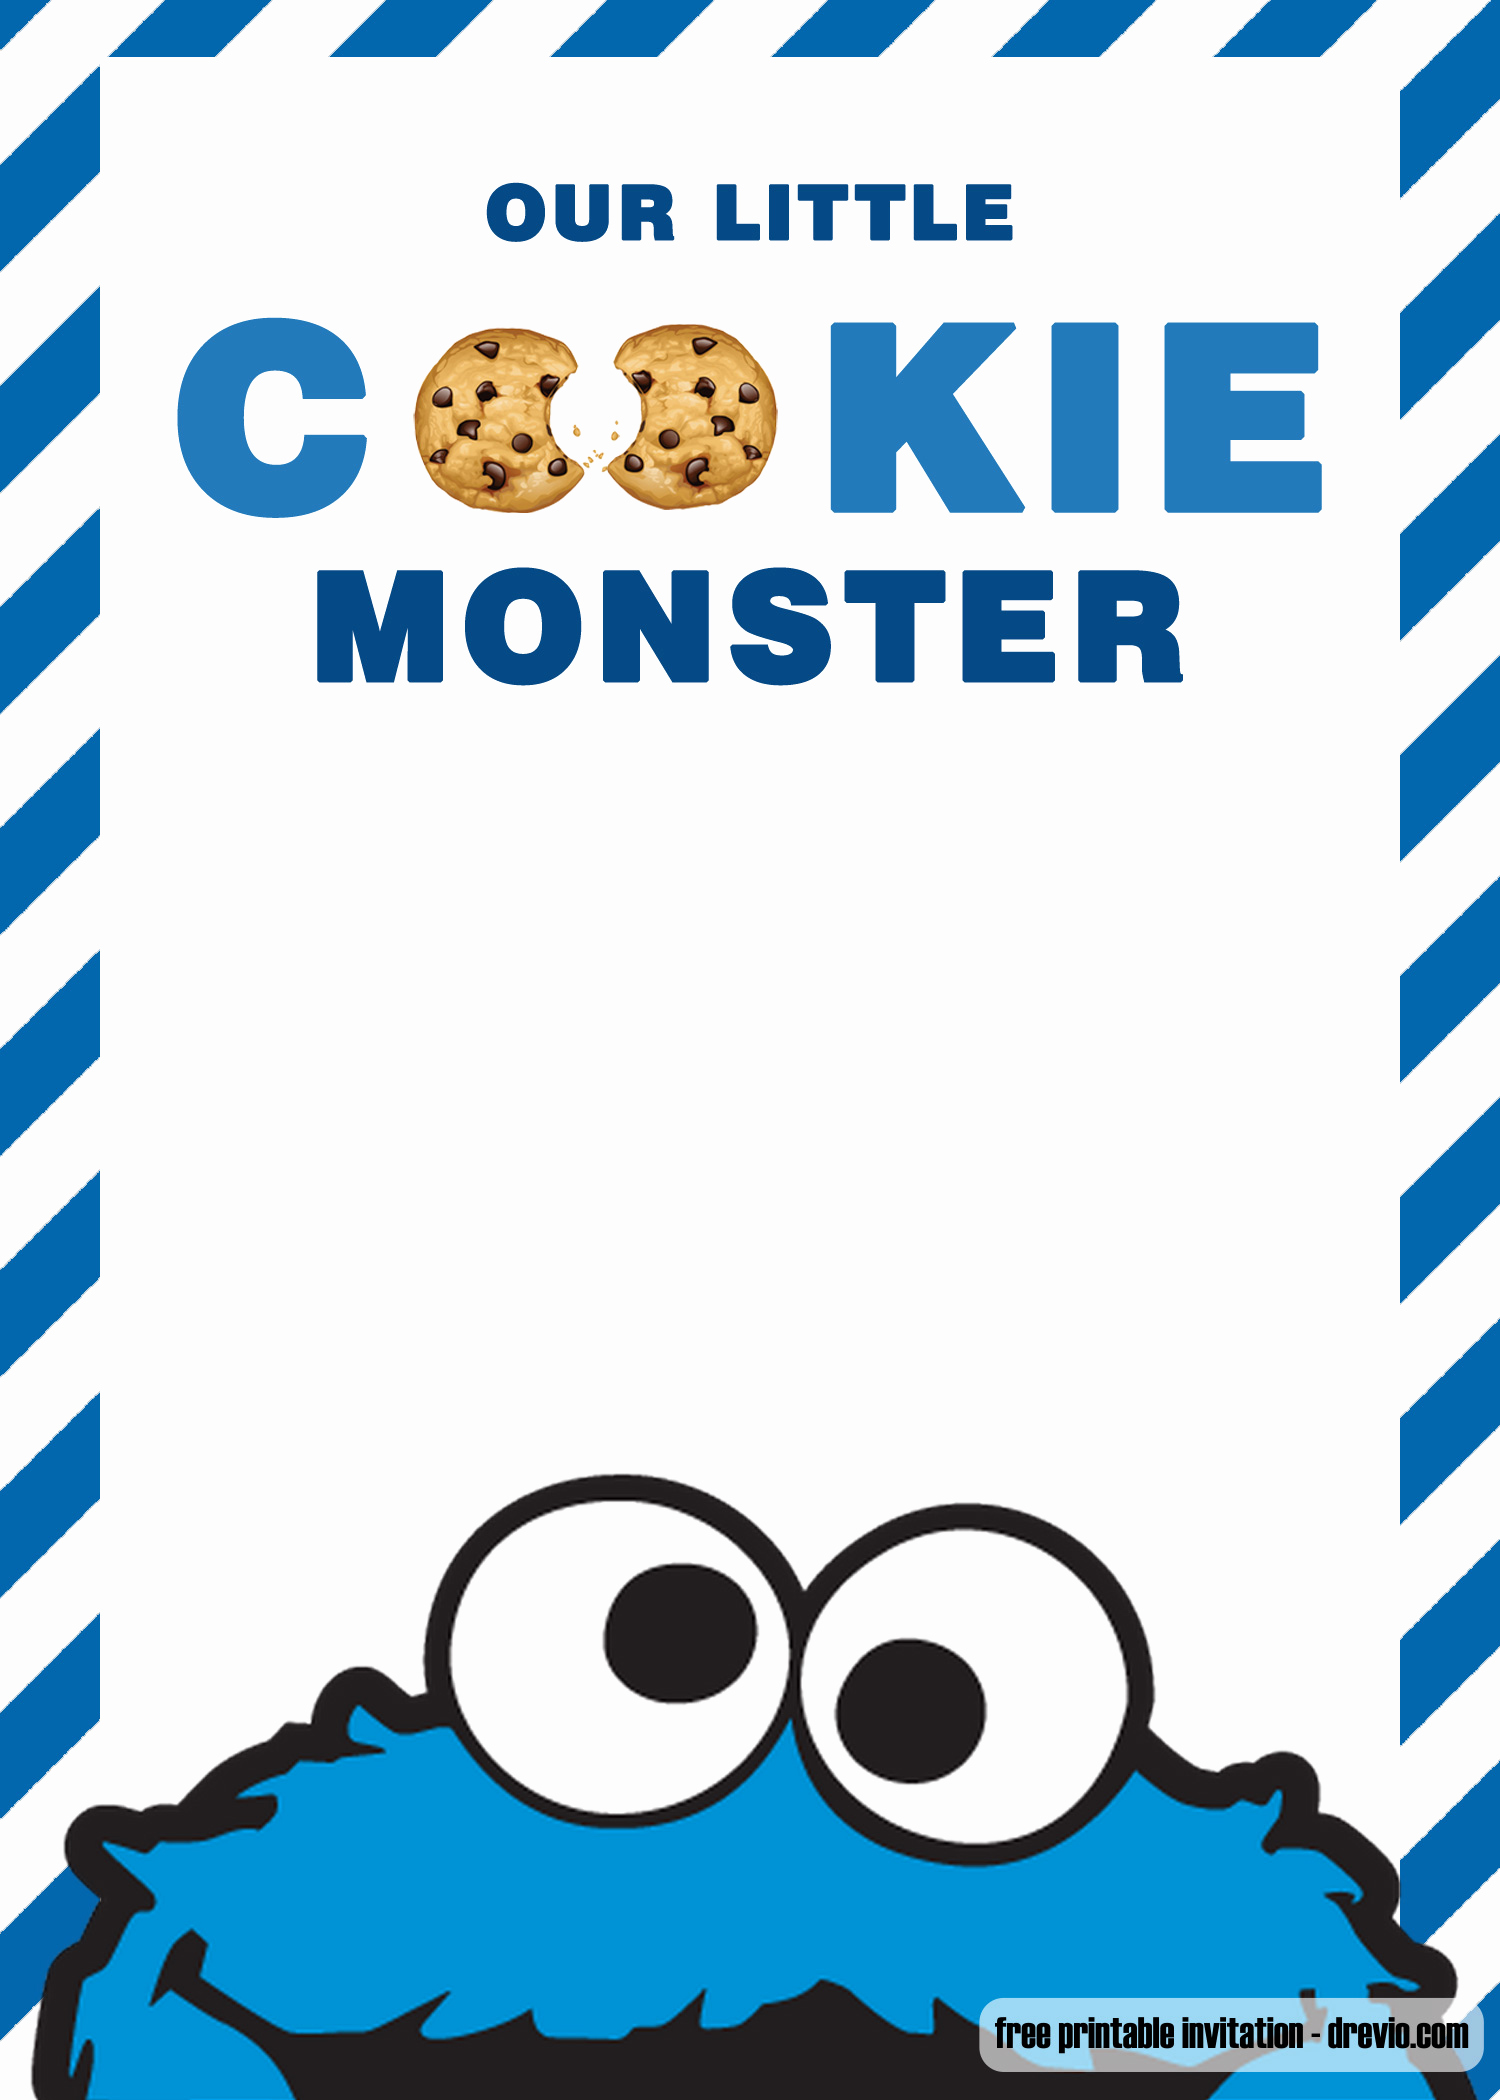 Cookie Monster Invitation Template Luxury Free Cookie Monster Birthday Invitation Templates – Free